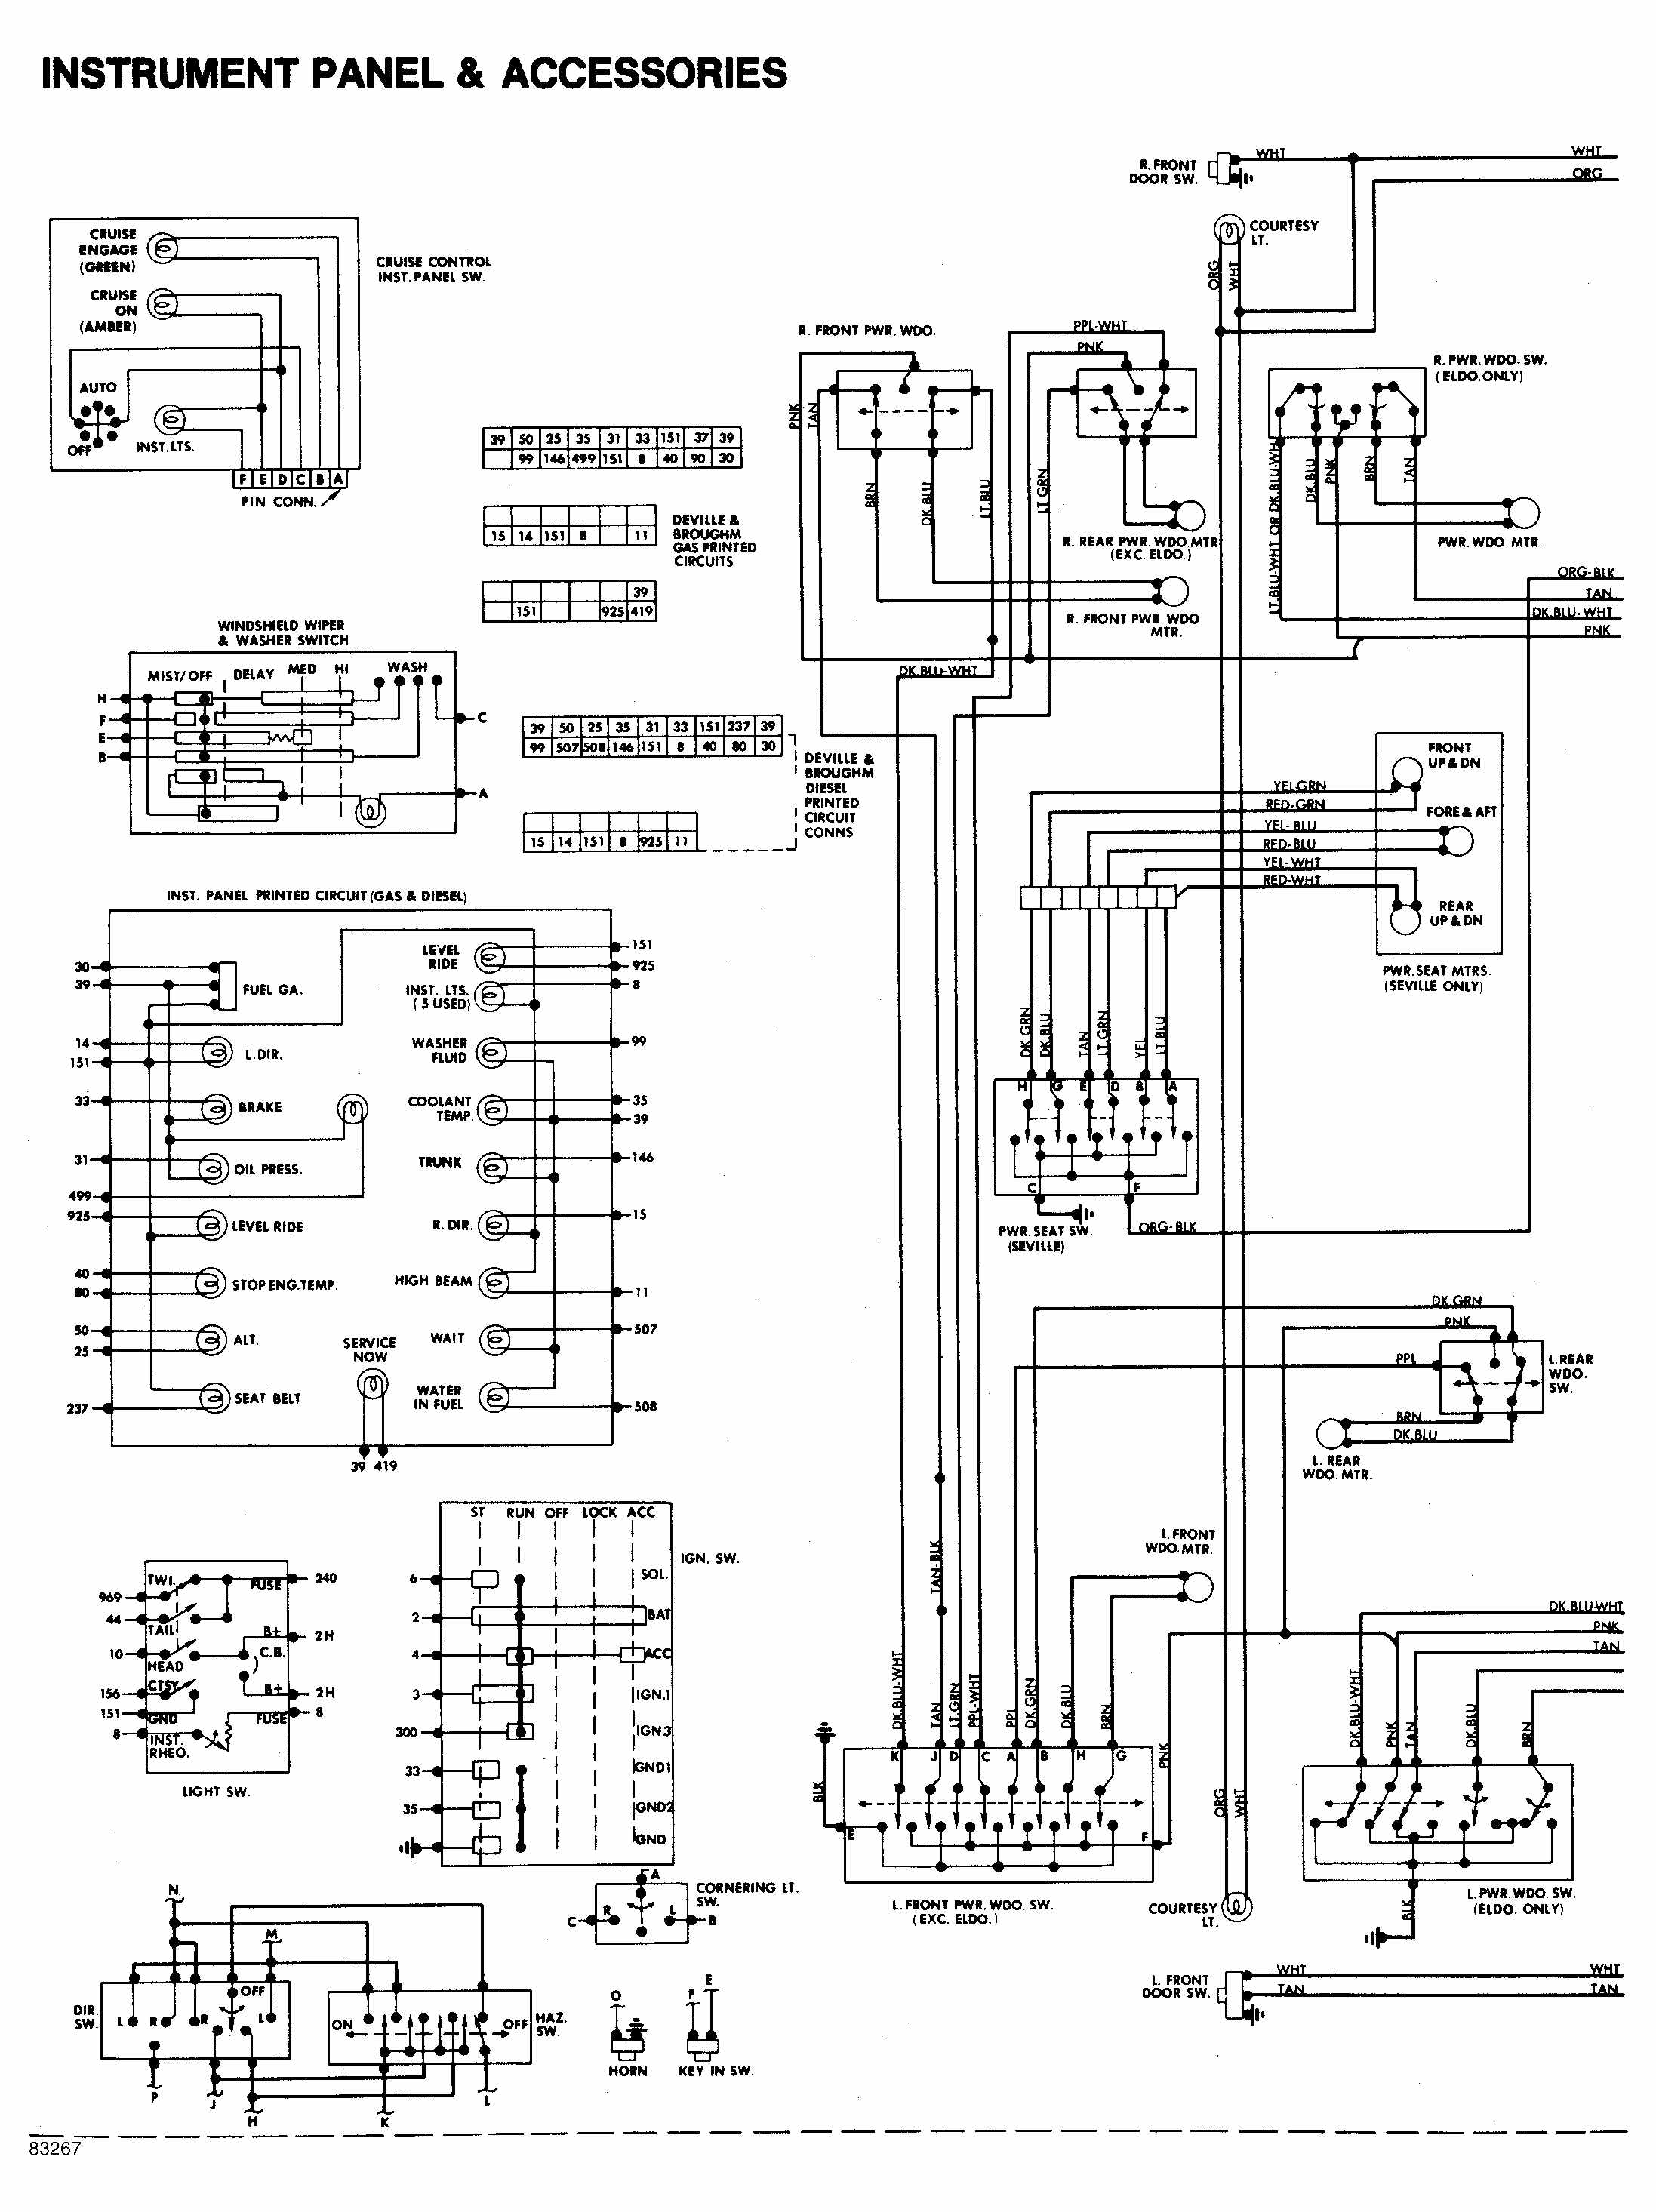 Stupendous Fleetwood Rv Wiring Diagrams Fleetwood Rv Electrical Schematic Wiring 101 Vieworaxxcnl